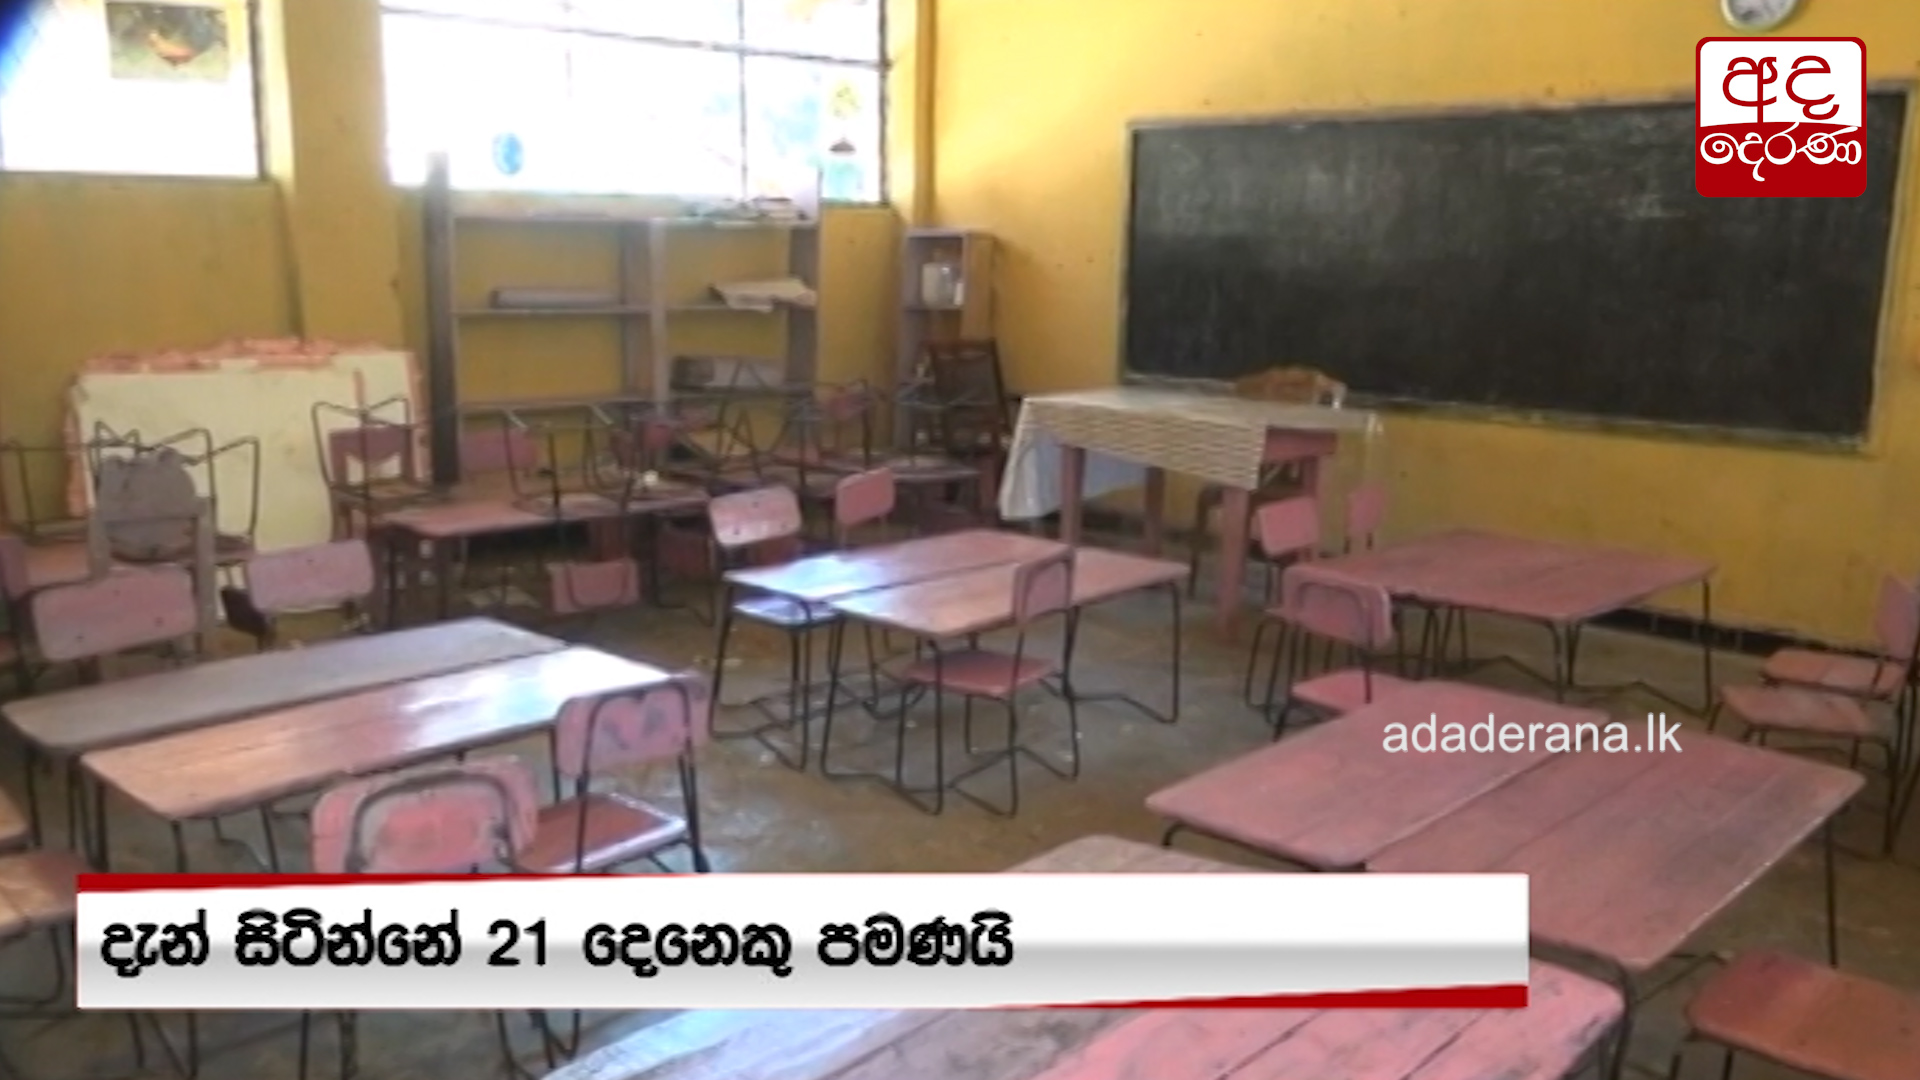 Thanthirimale school closed for a week over lack of teachers